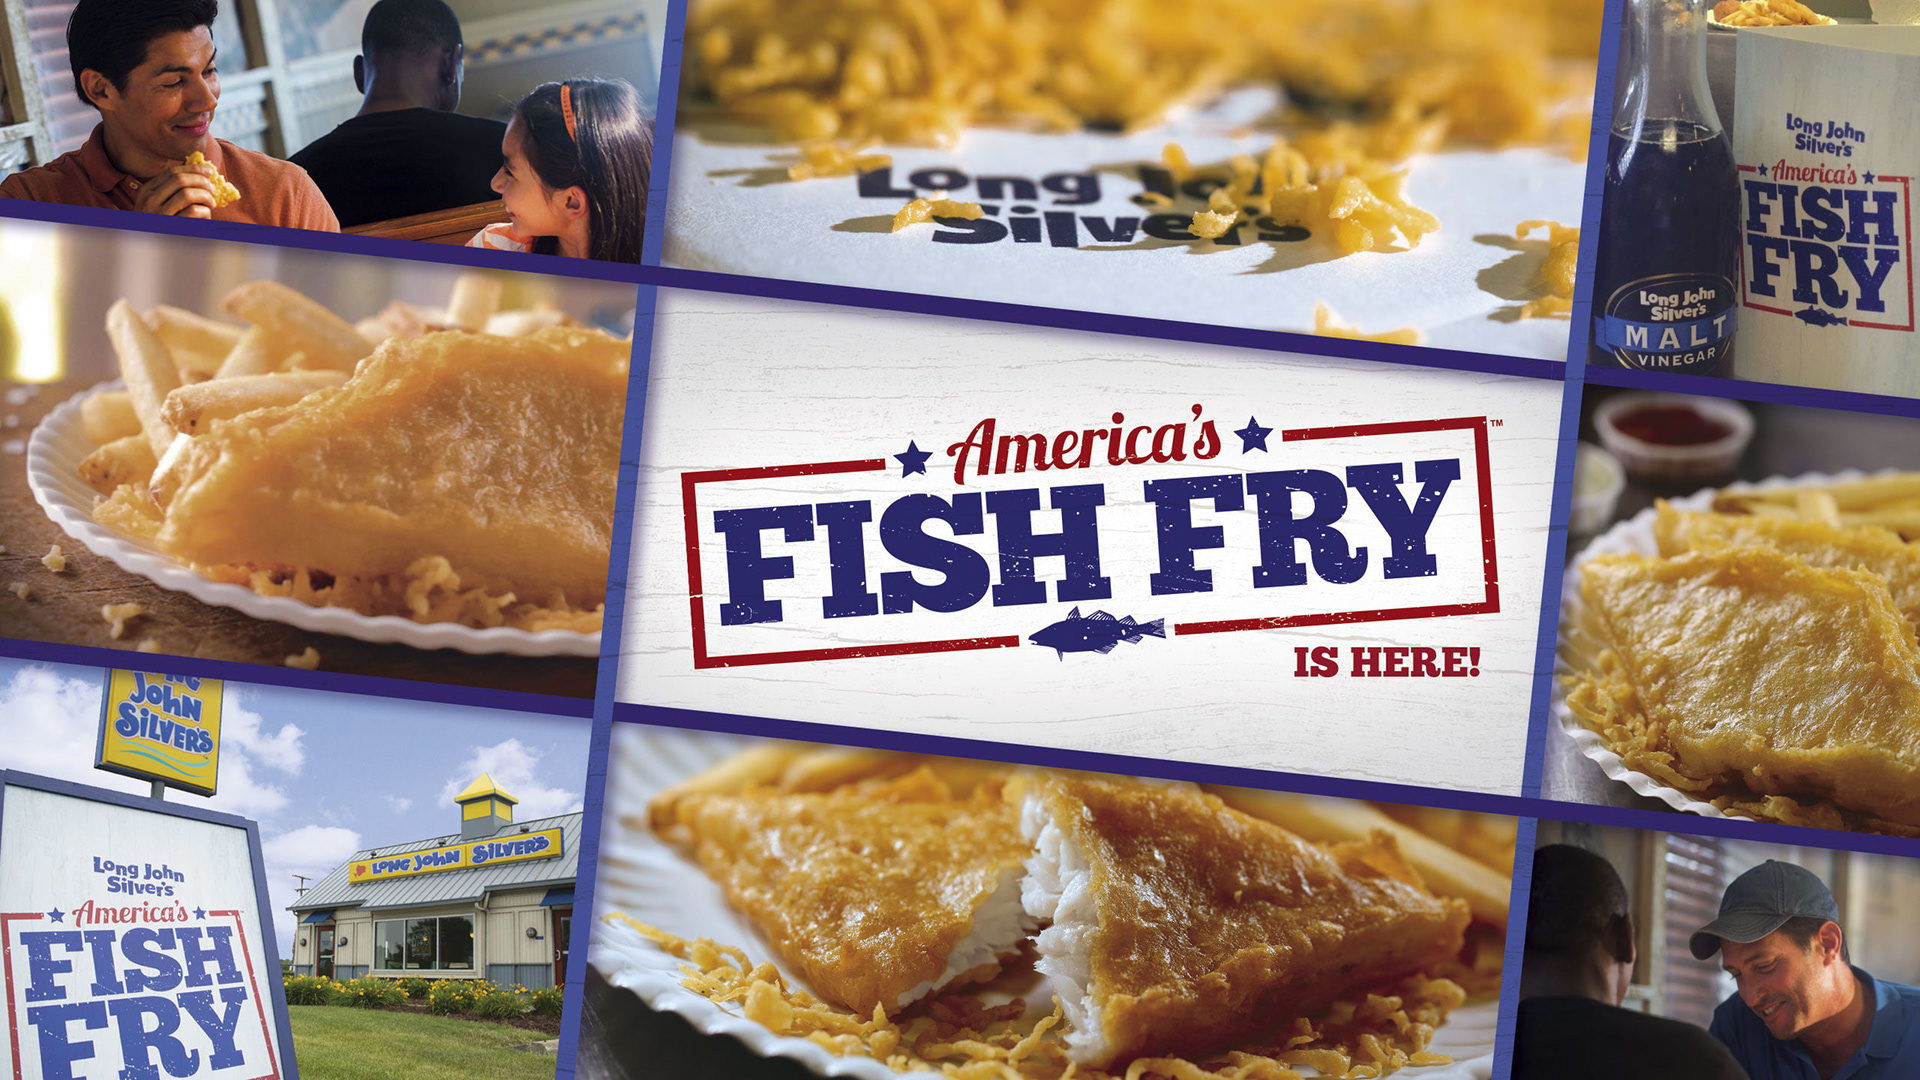 Jonathan hyatt creative direction art direction design for Long john silver s fish and chips